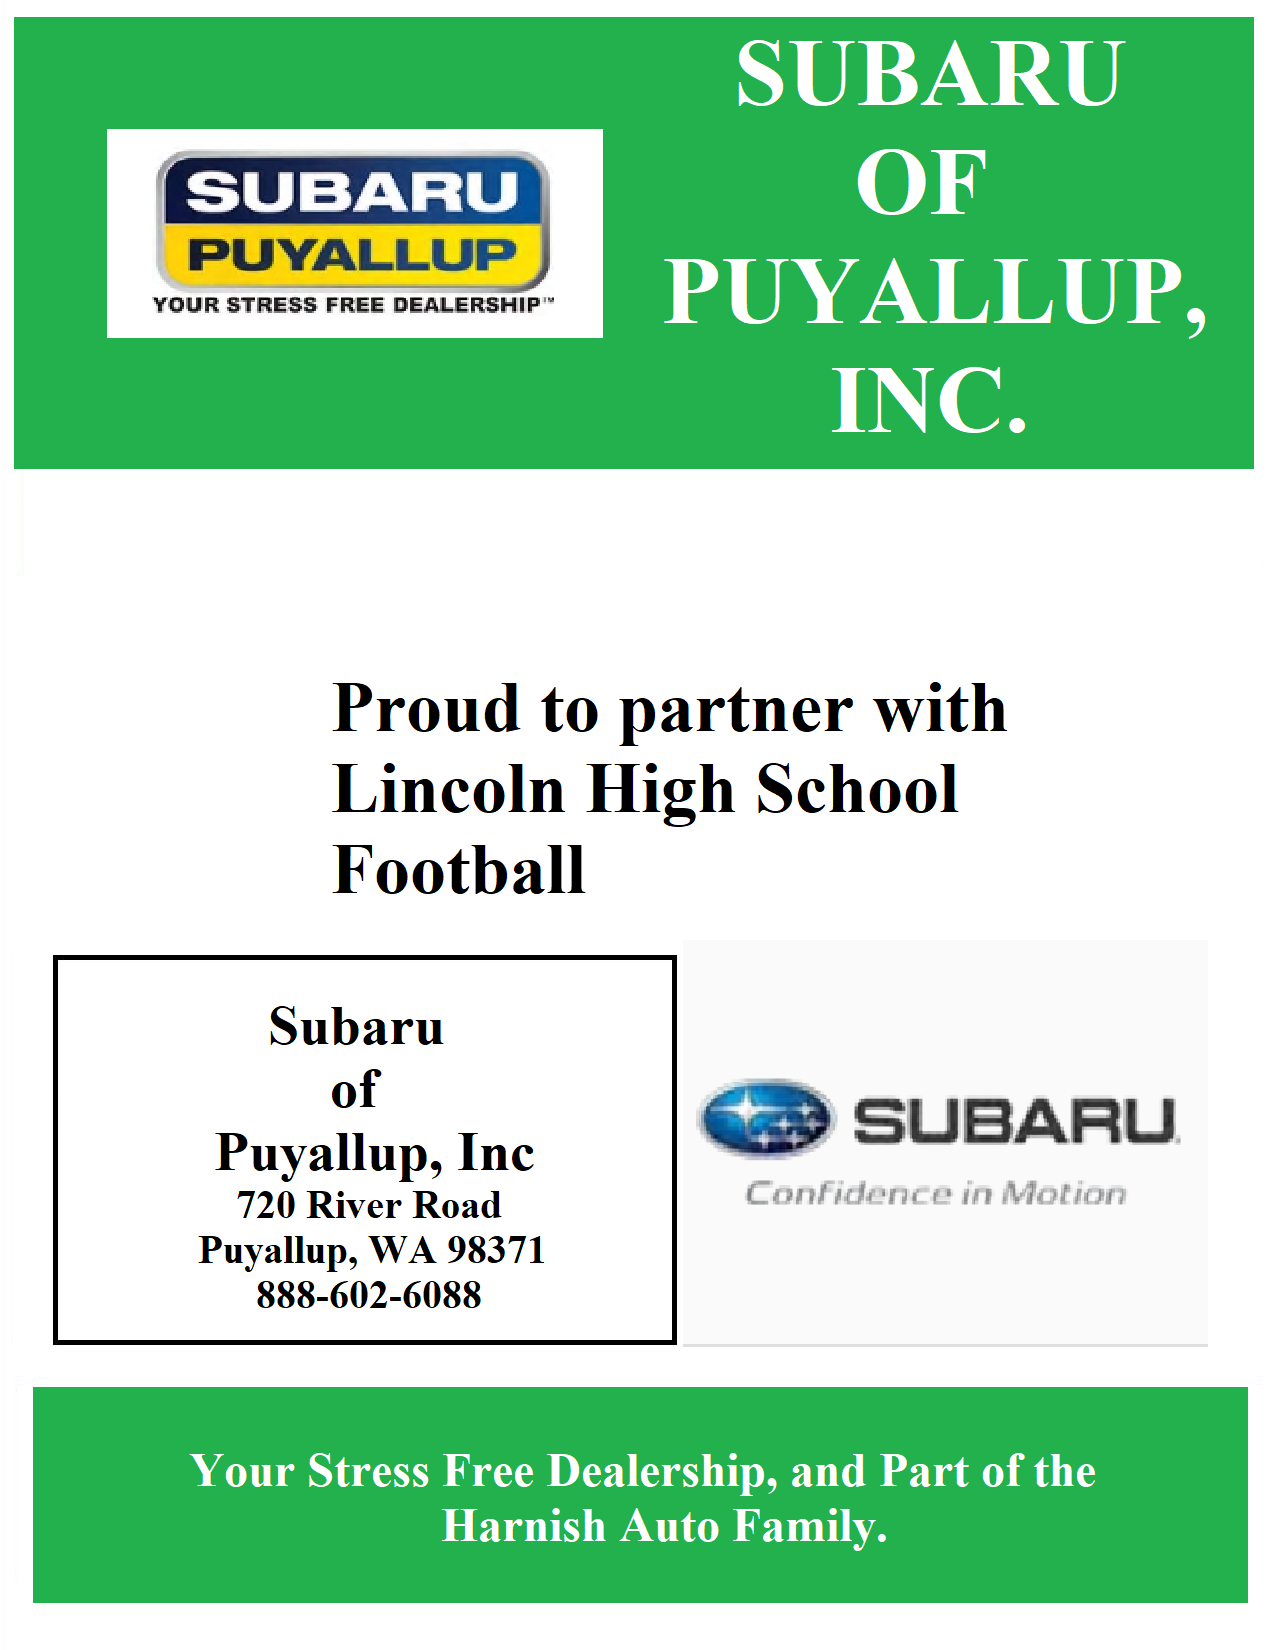 Subaru of Puyallup, Inc.